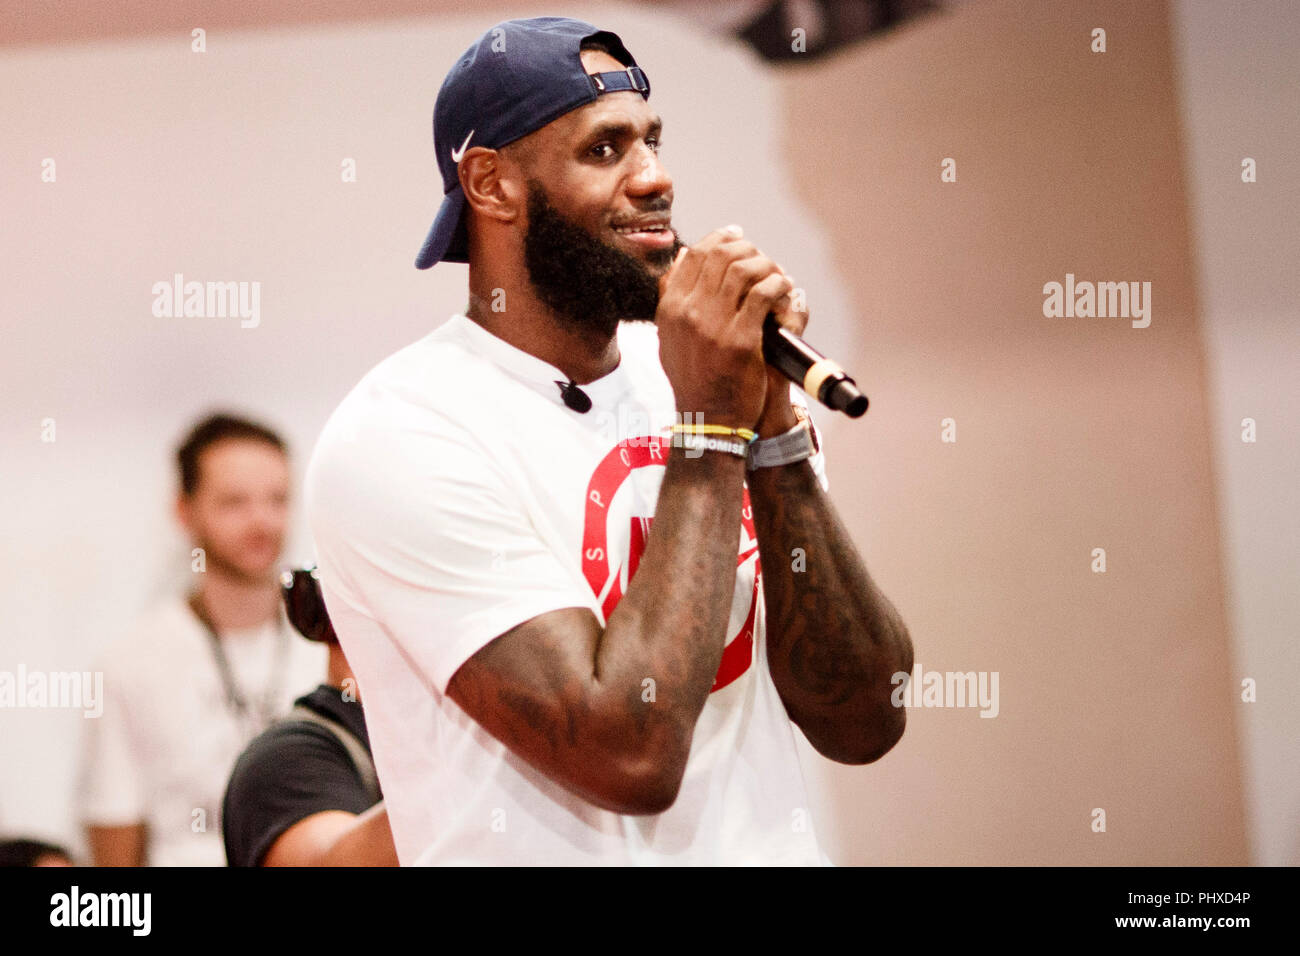 Berlin, Germany. 02nd Sep, 2018. 2.9.2018, Berlin: James LeBron, NBA professional of the Los Angeles Lakers, speaks at an event during the promotion tour 'More than an athlete'. The two-time Olympic champion has won the North American professional league NBA three times in his career and is regarded as the best basketball player of his generation. Credit: Carsten Koall/dpa/Alamy Live News - Stock Image